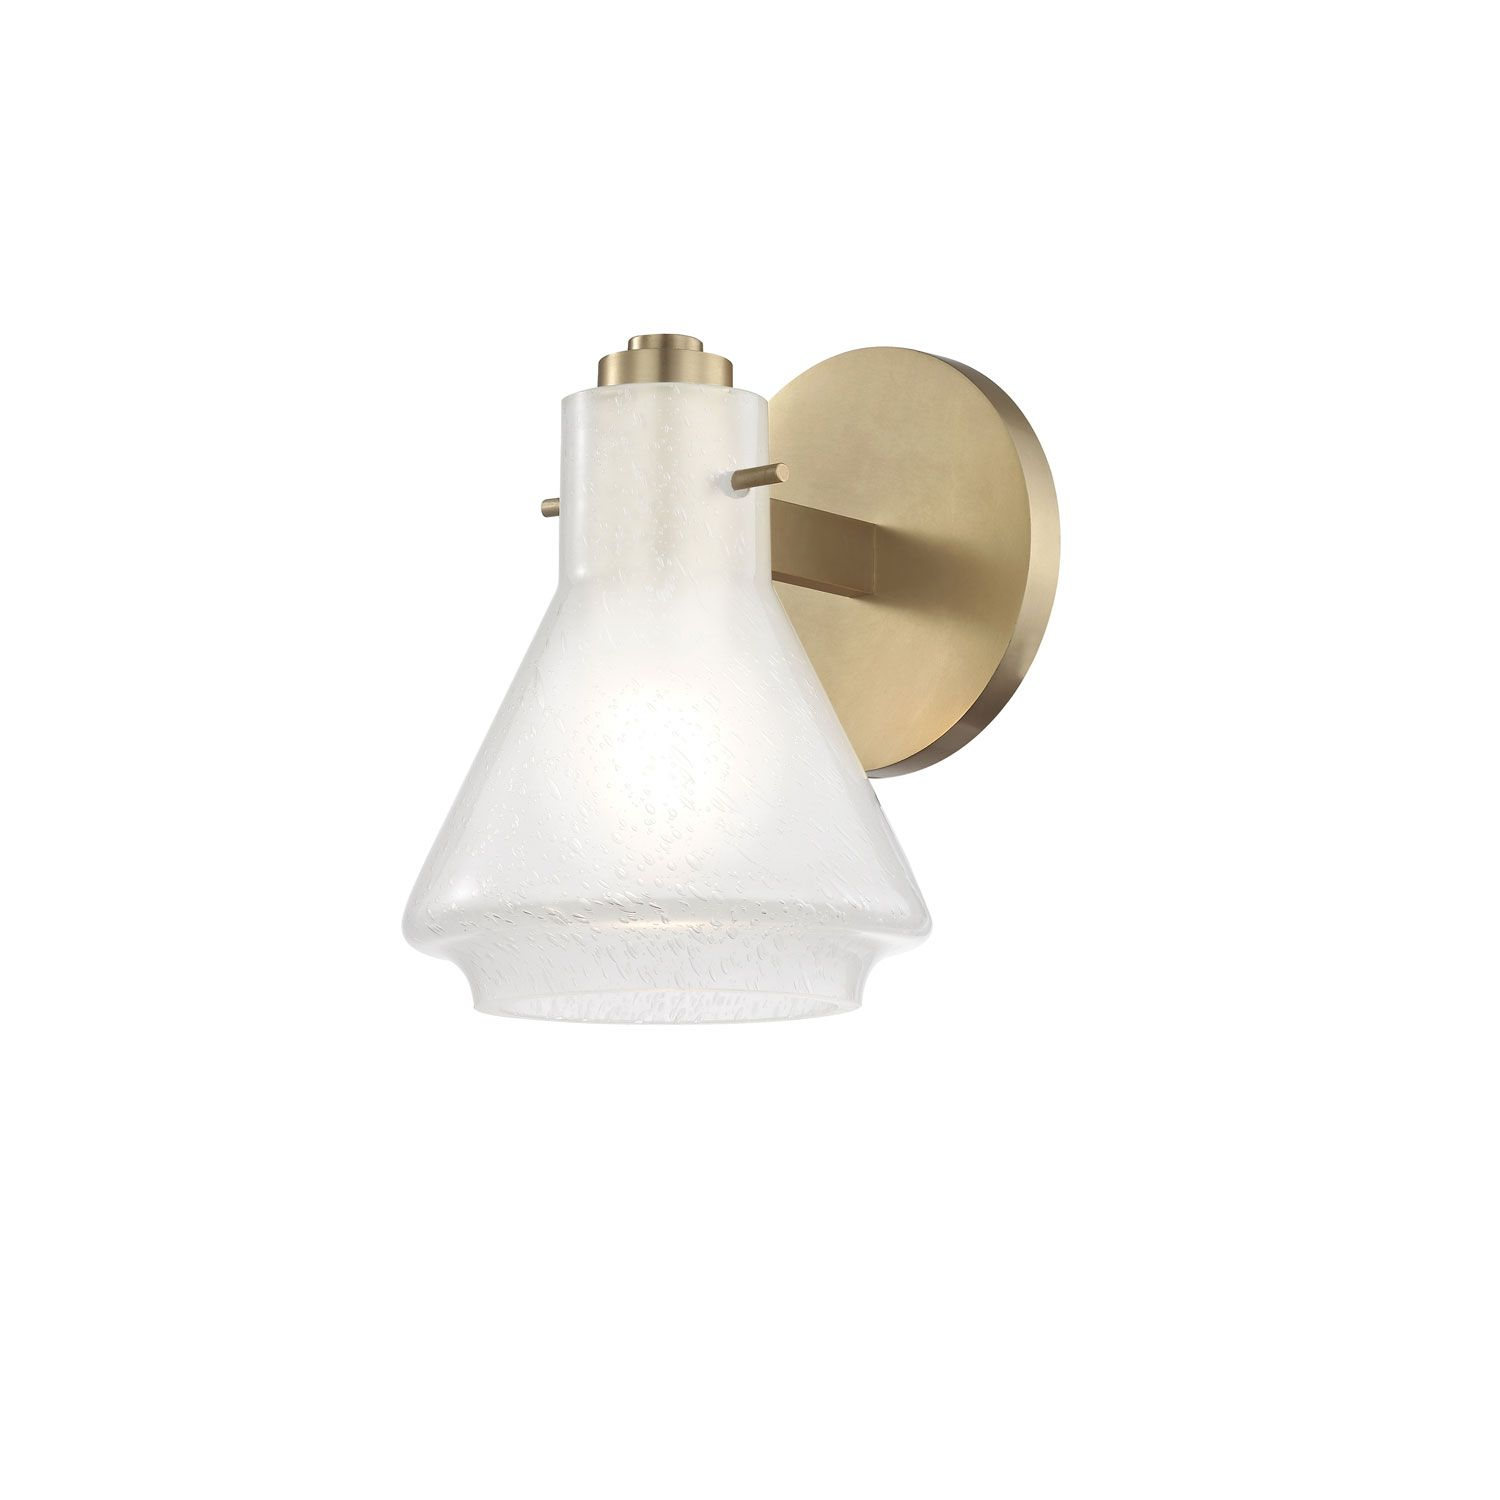 Photo of Mitzi By Hudson Valley Lighting Rosie Aged Brass 6 Inch One Light Vanity H129301 Agb | Bellacor